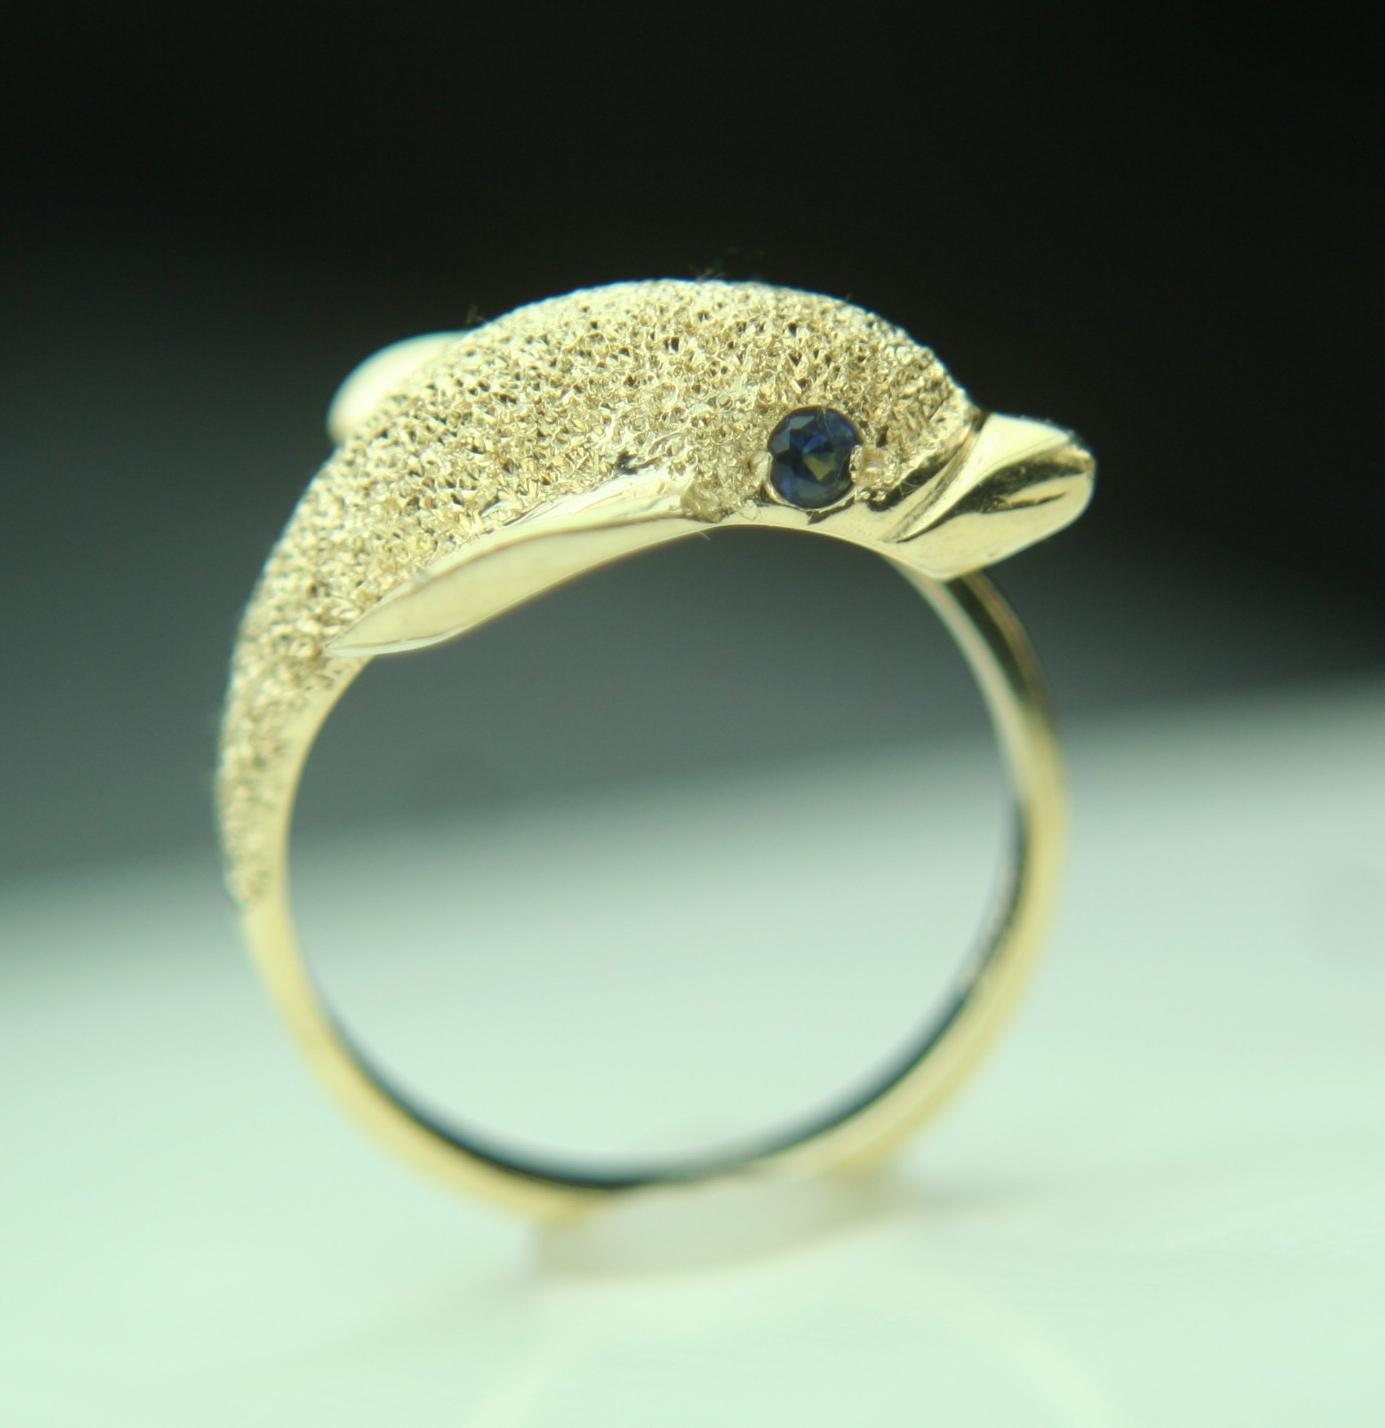 14k Solid Yellow Gold Dolphin Wrap Around Fine Ring from